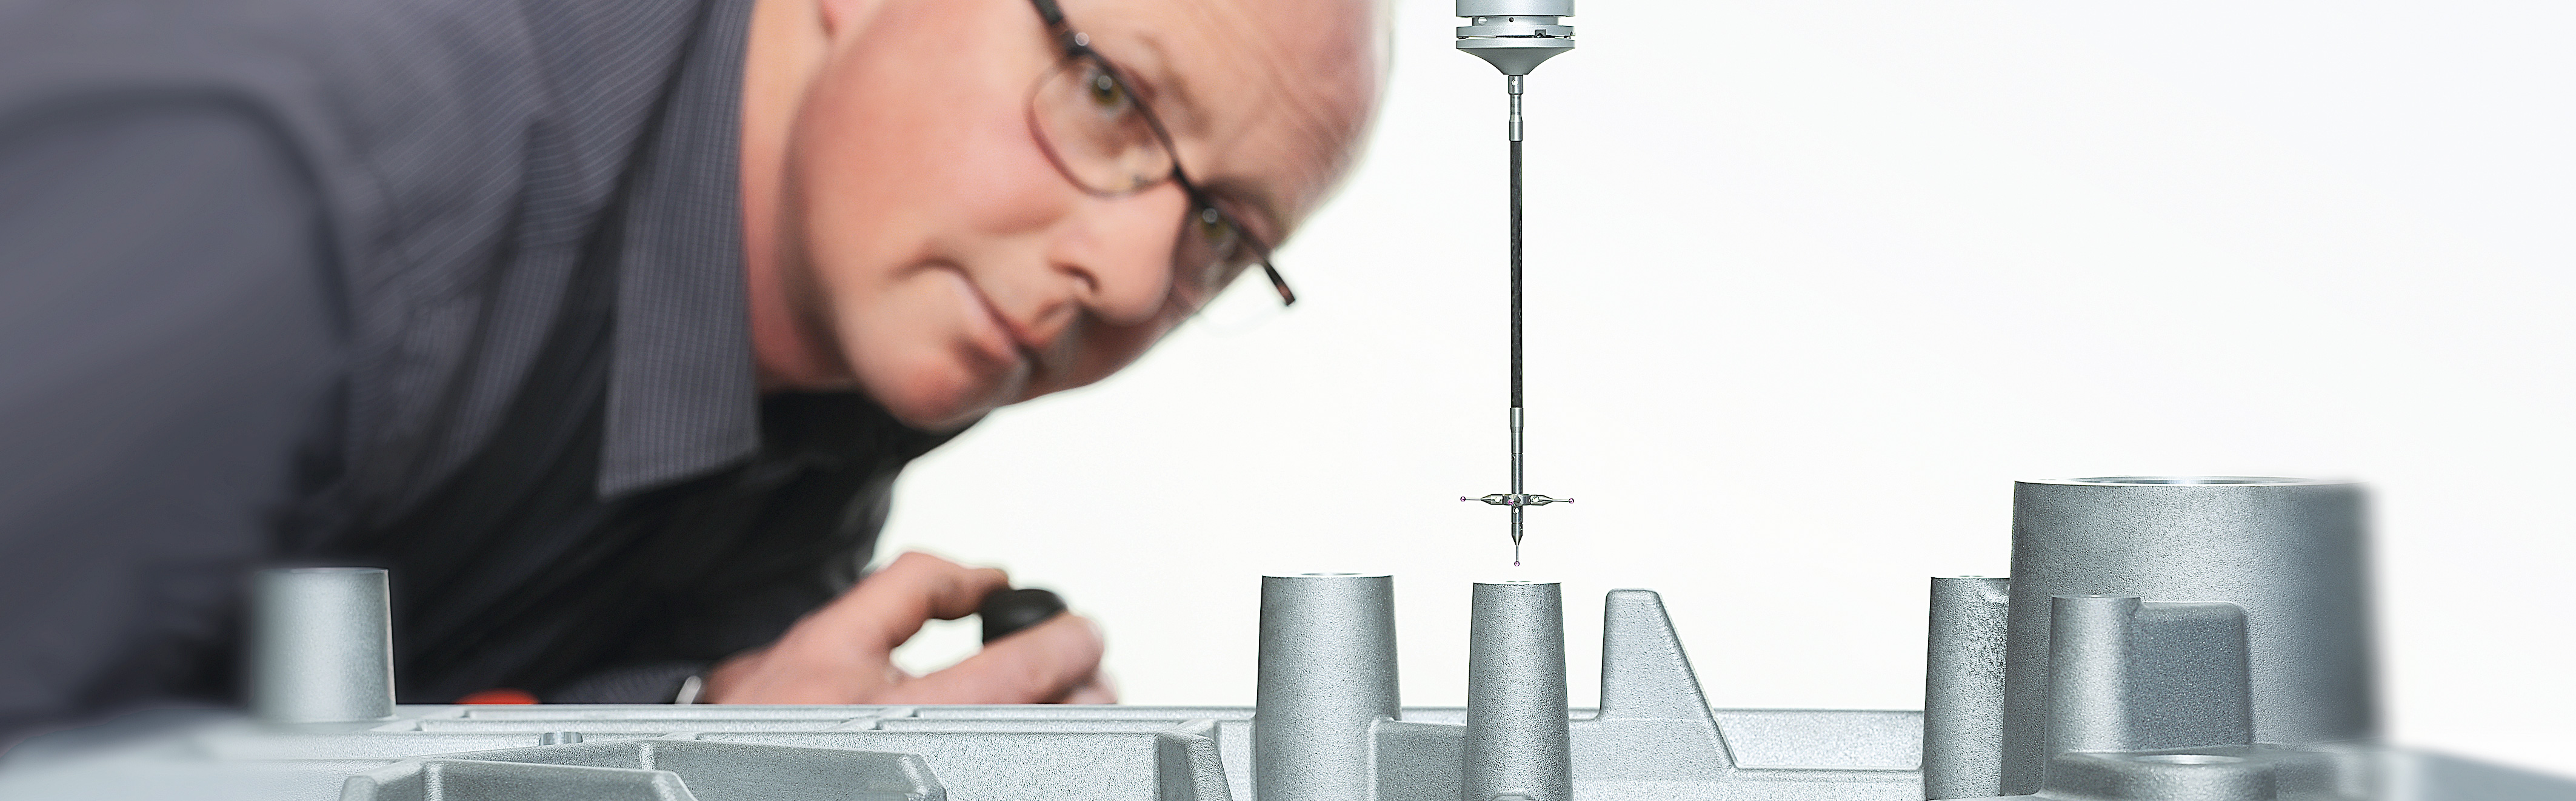 SAHM employee of the quality management looking at a part of a measuring machine